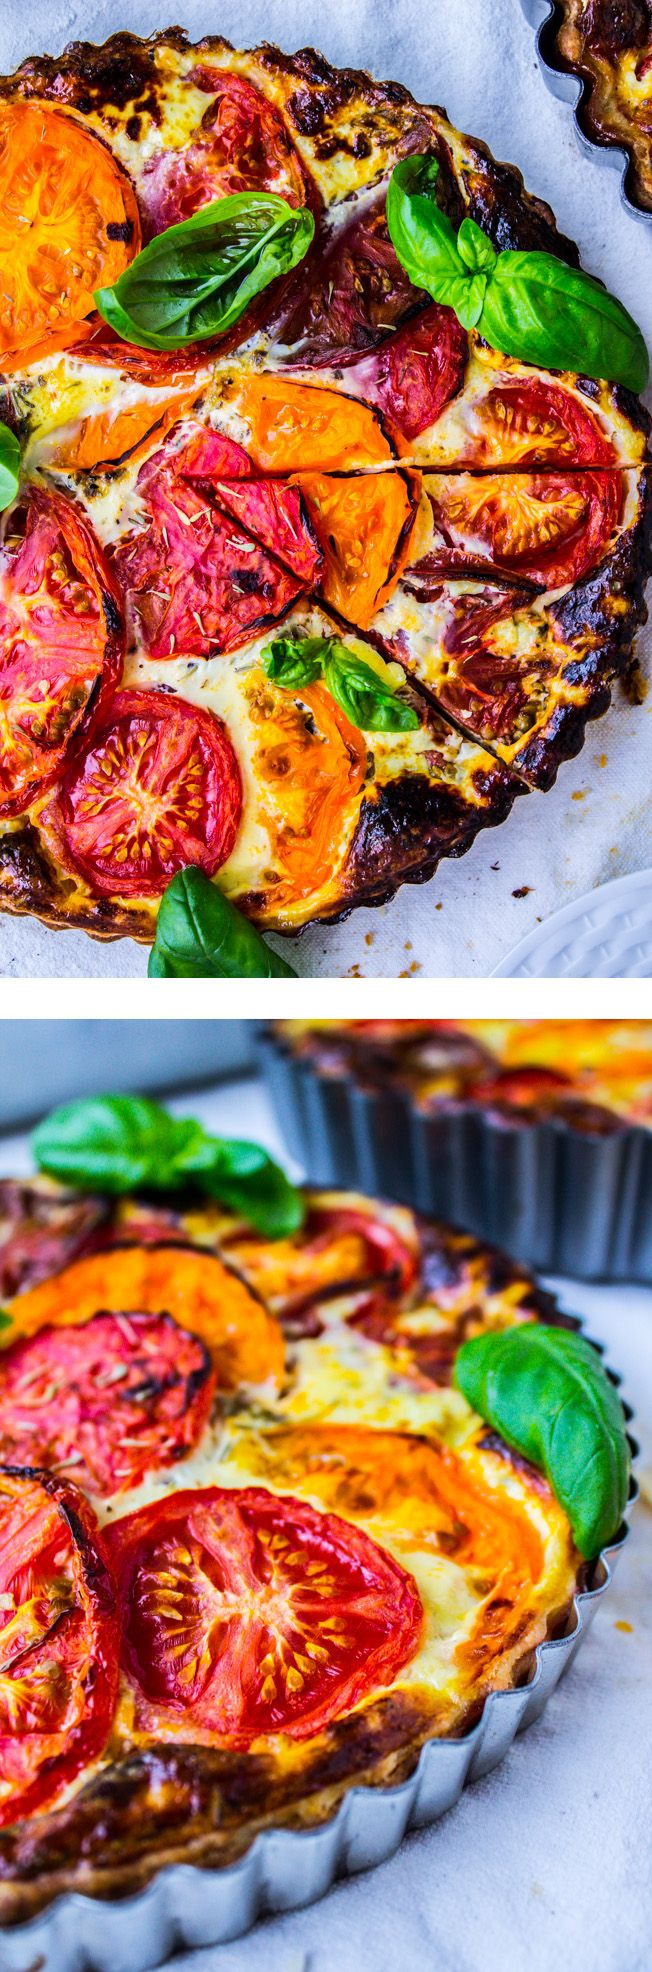 Tomato Tart with Blue Cheese - The perfect ratio of a buttery crust to quiche-like filling. Tasty way to use up summer heirlooms for breakfast brunch or dinner!